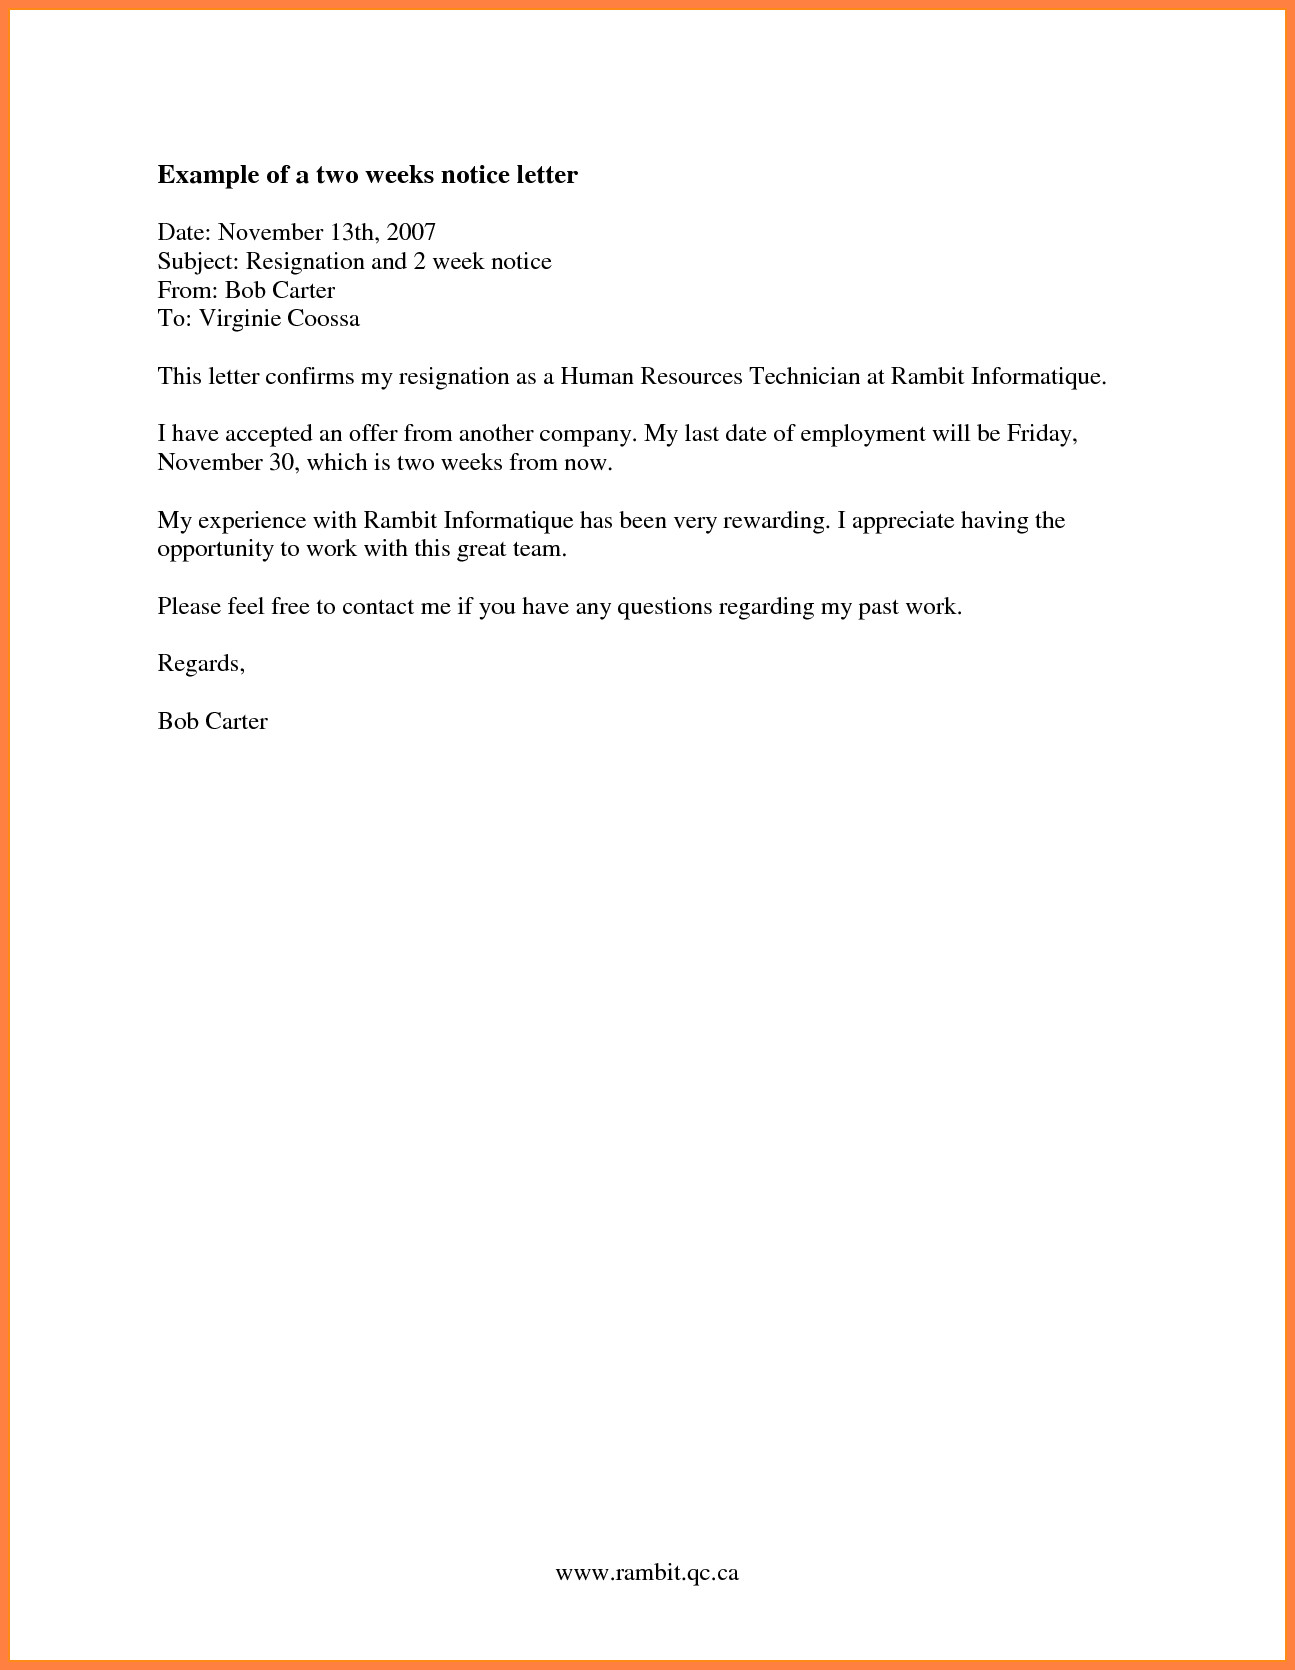 Sample Resignation Letter Nurse 8 Resignation Letter 2 Week Notice Nurse